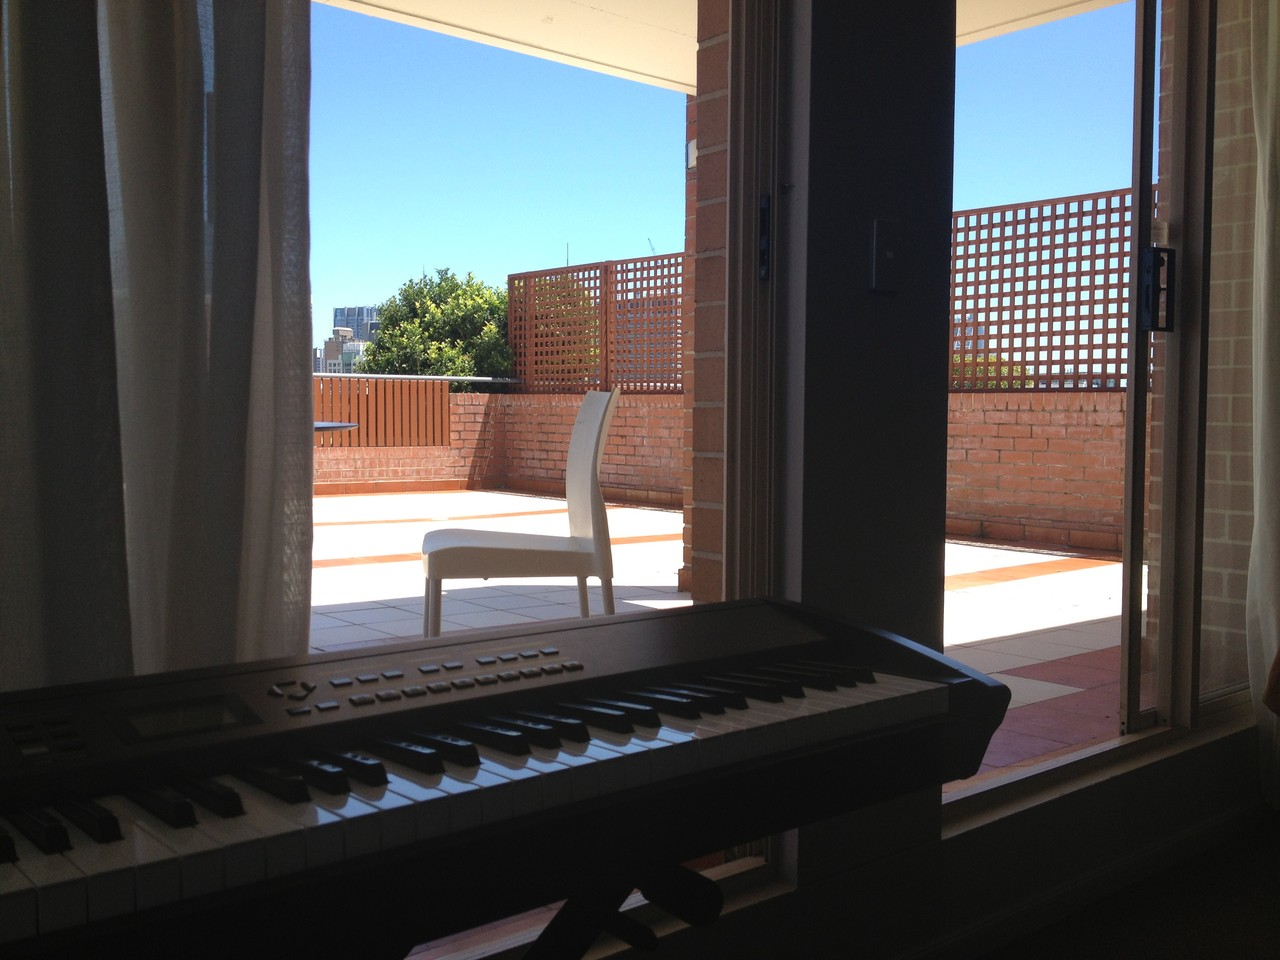 Happily arranging away on the keyboard when I made the unfortunate mistake of glancing on to the next balcony … two men romping around naked !!!!! — at Sydney.